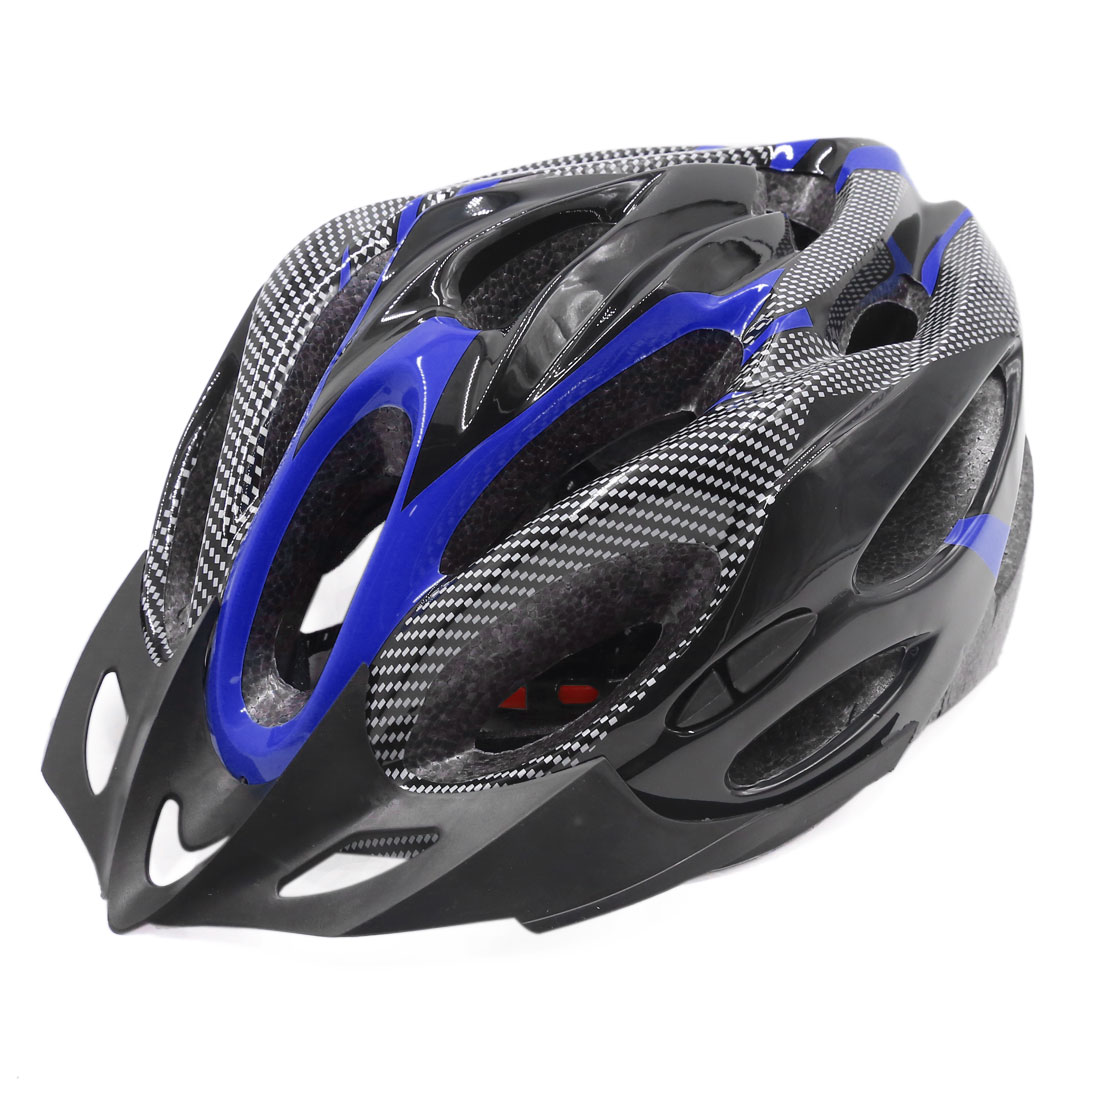 Carbon Fiber Pattern Adjustable Outdoor Bicycle Road Bike Helmet Blue Black